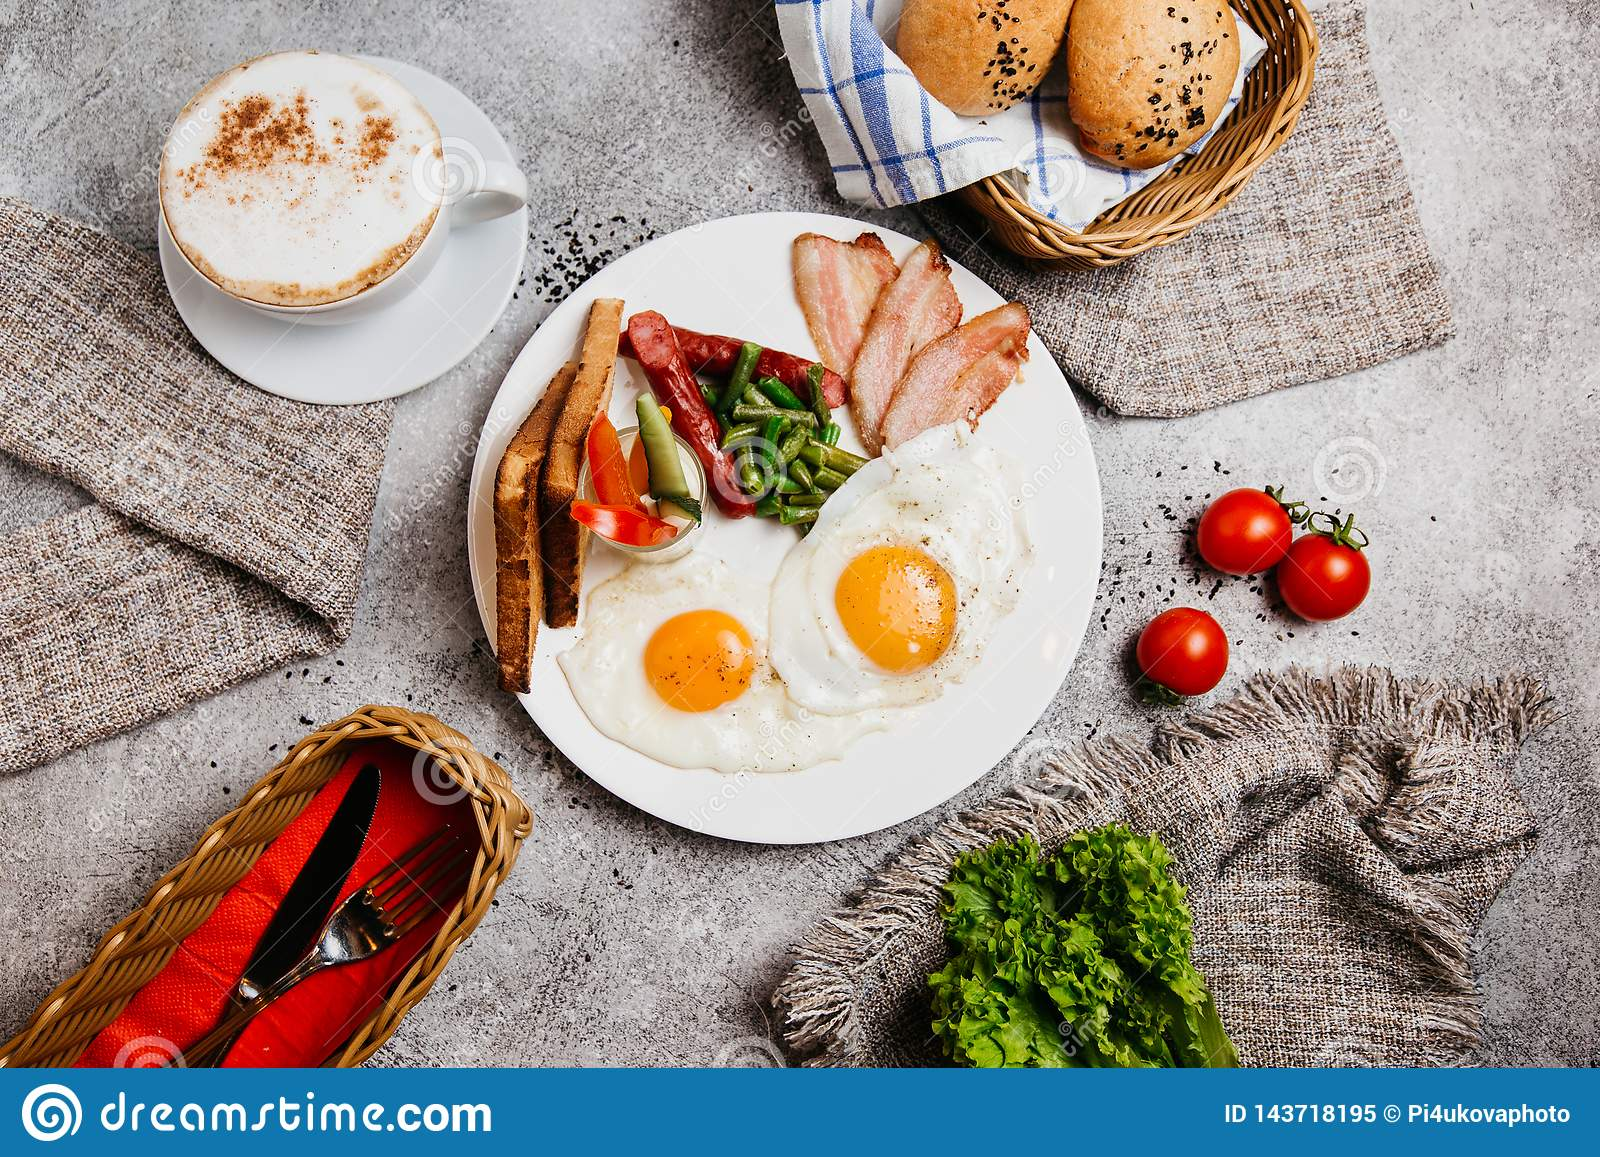 Perfect breakfast with coffee